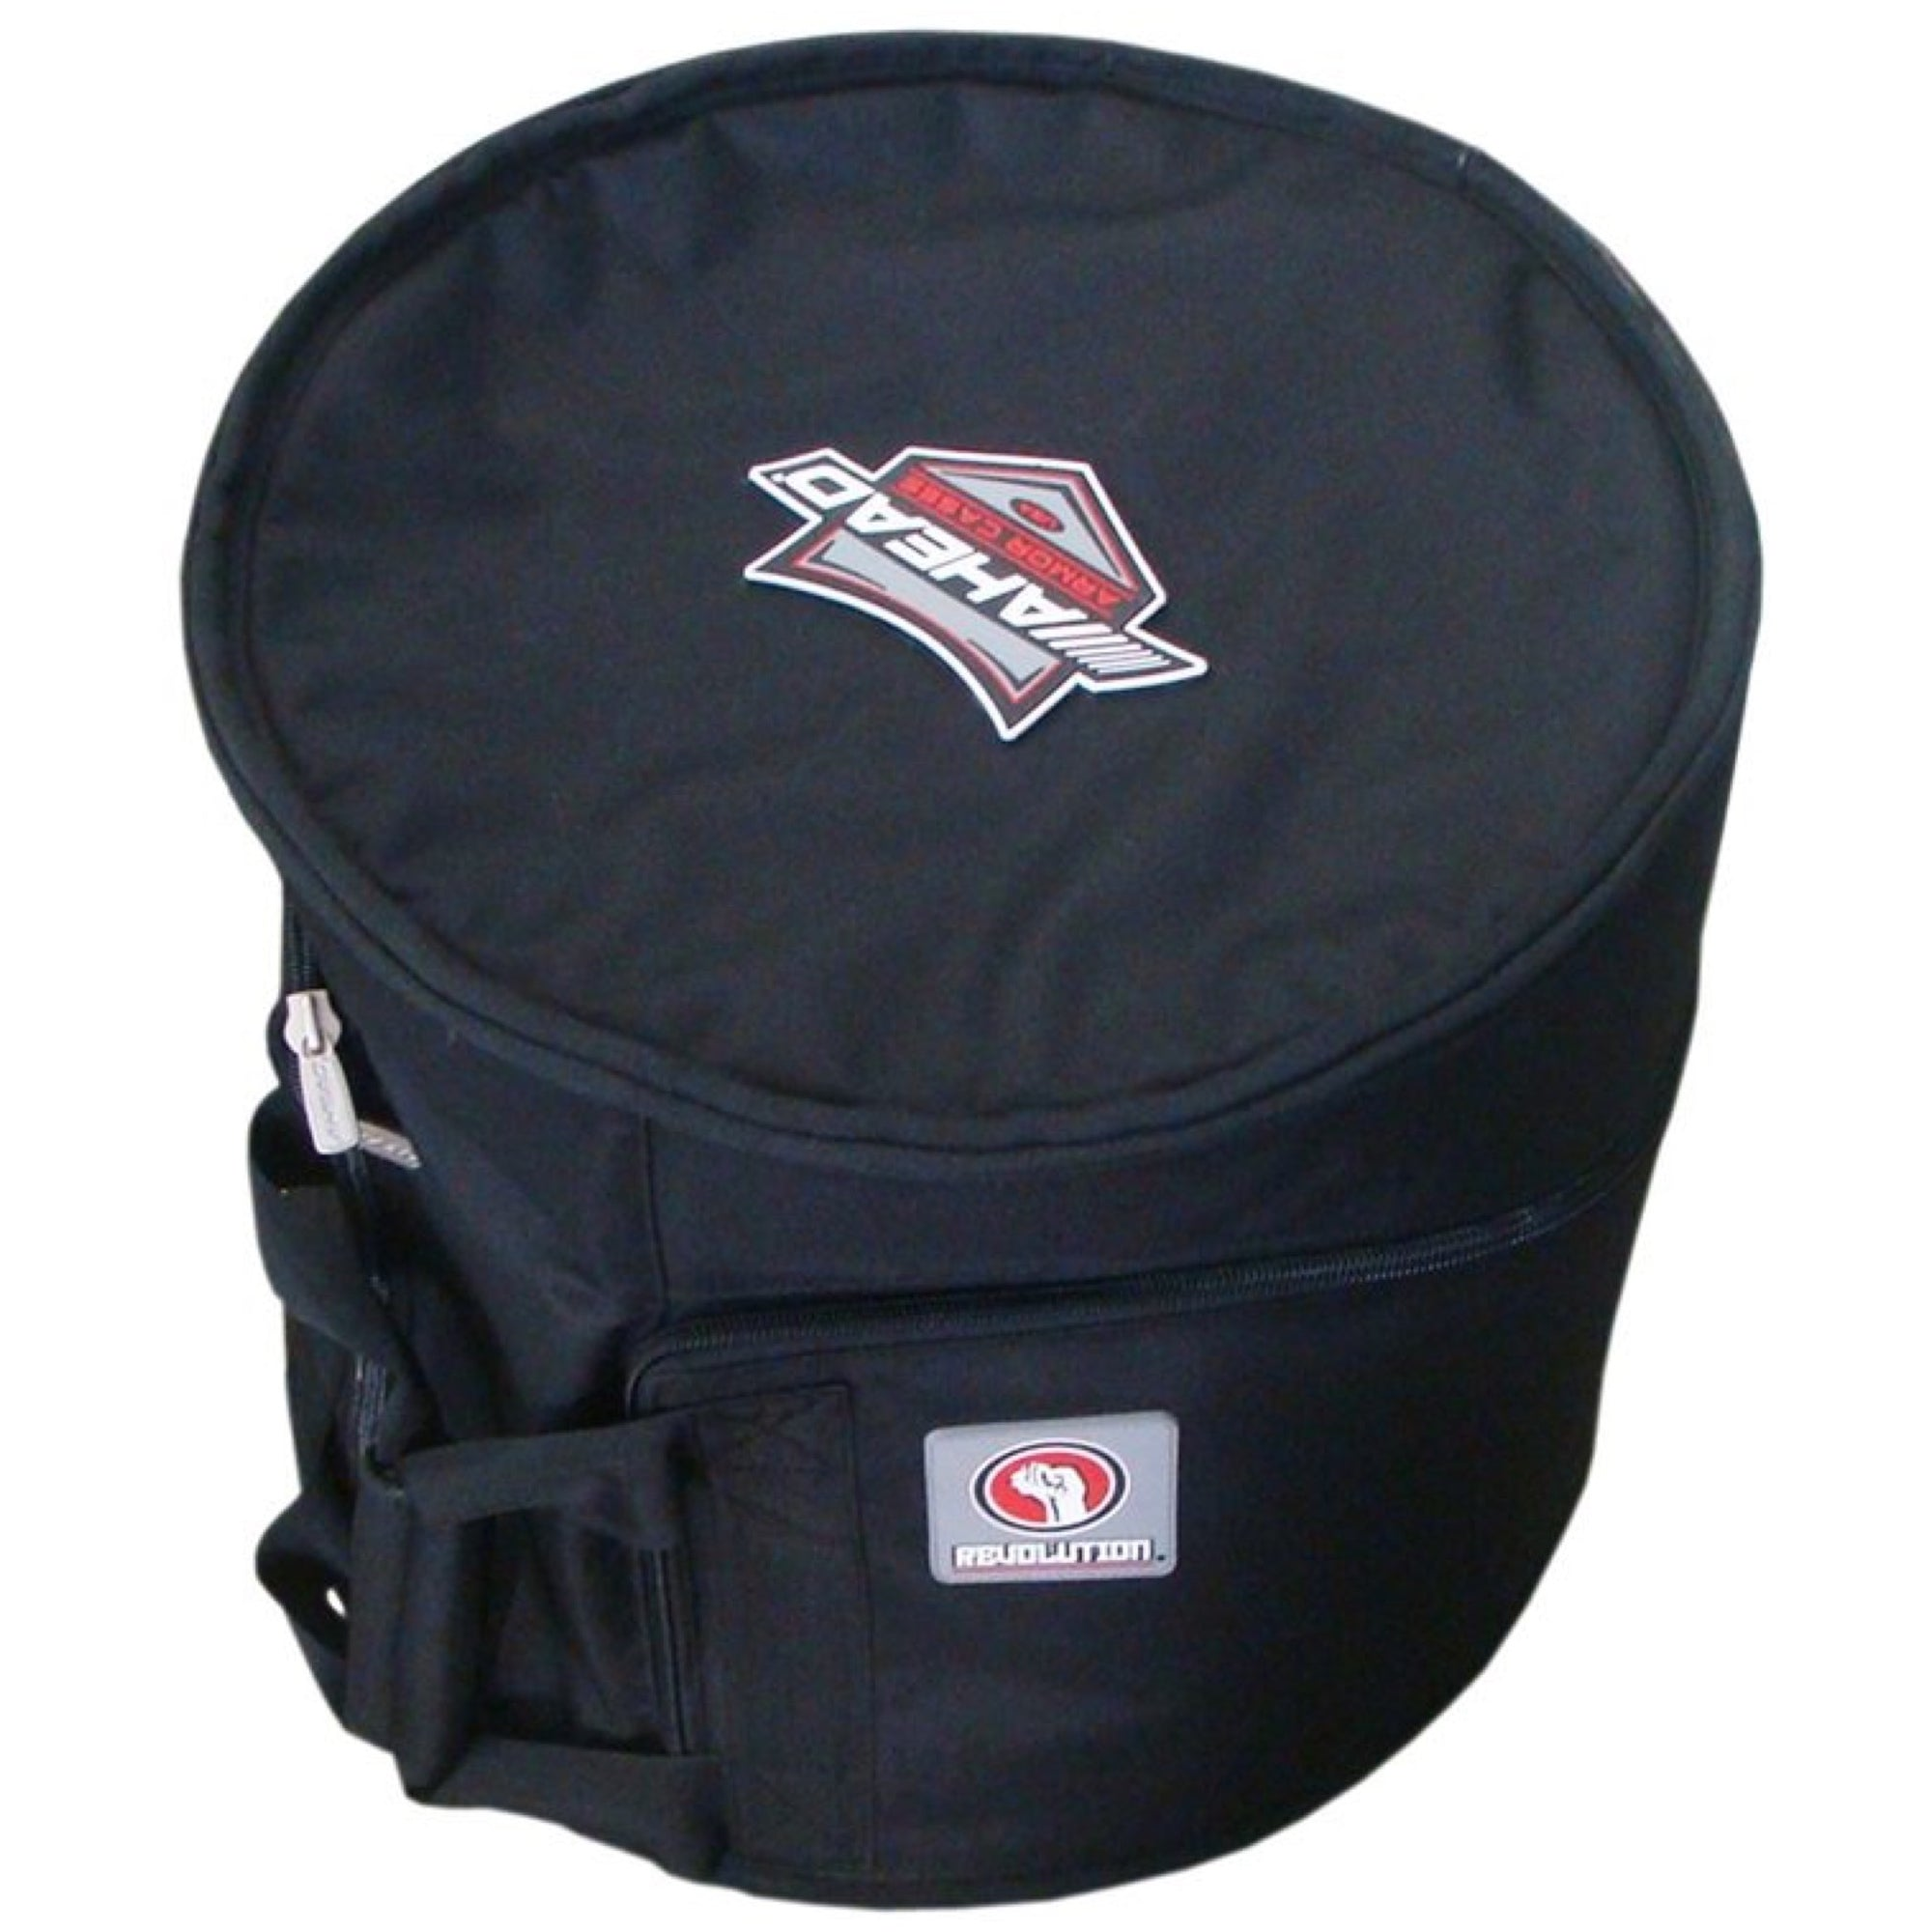 Ahead Armor Padded Floor Tom Bag, AR2016, 16x16 Inch